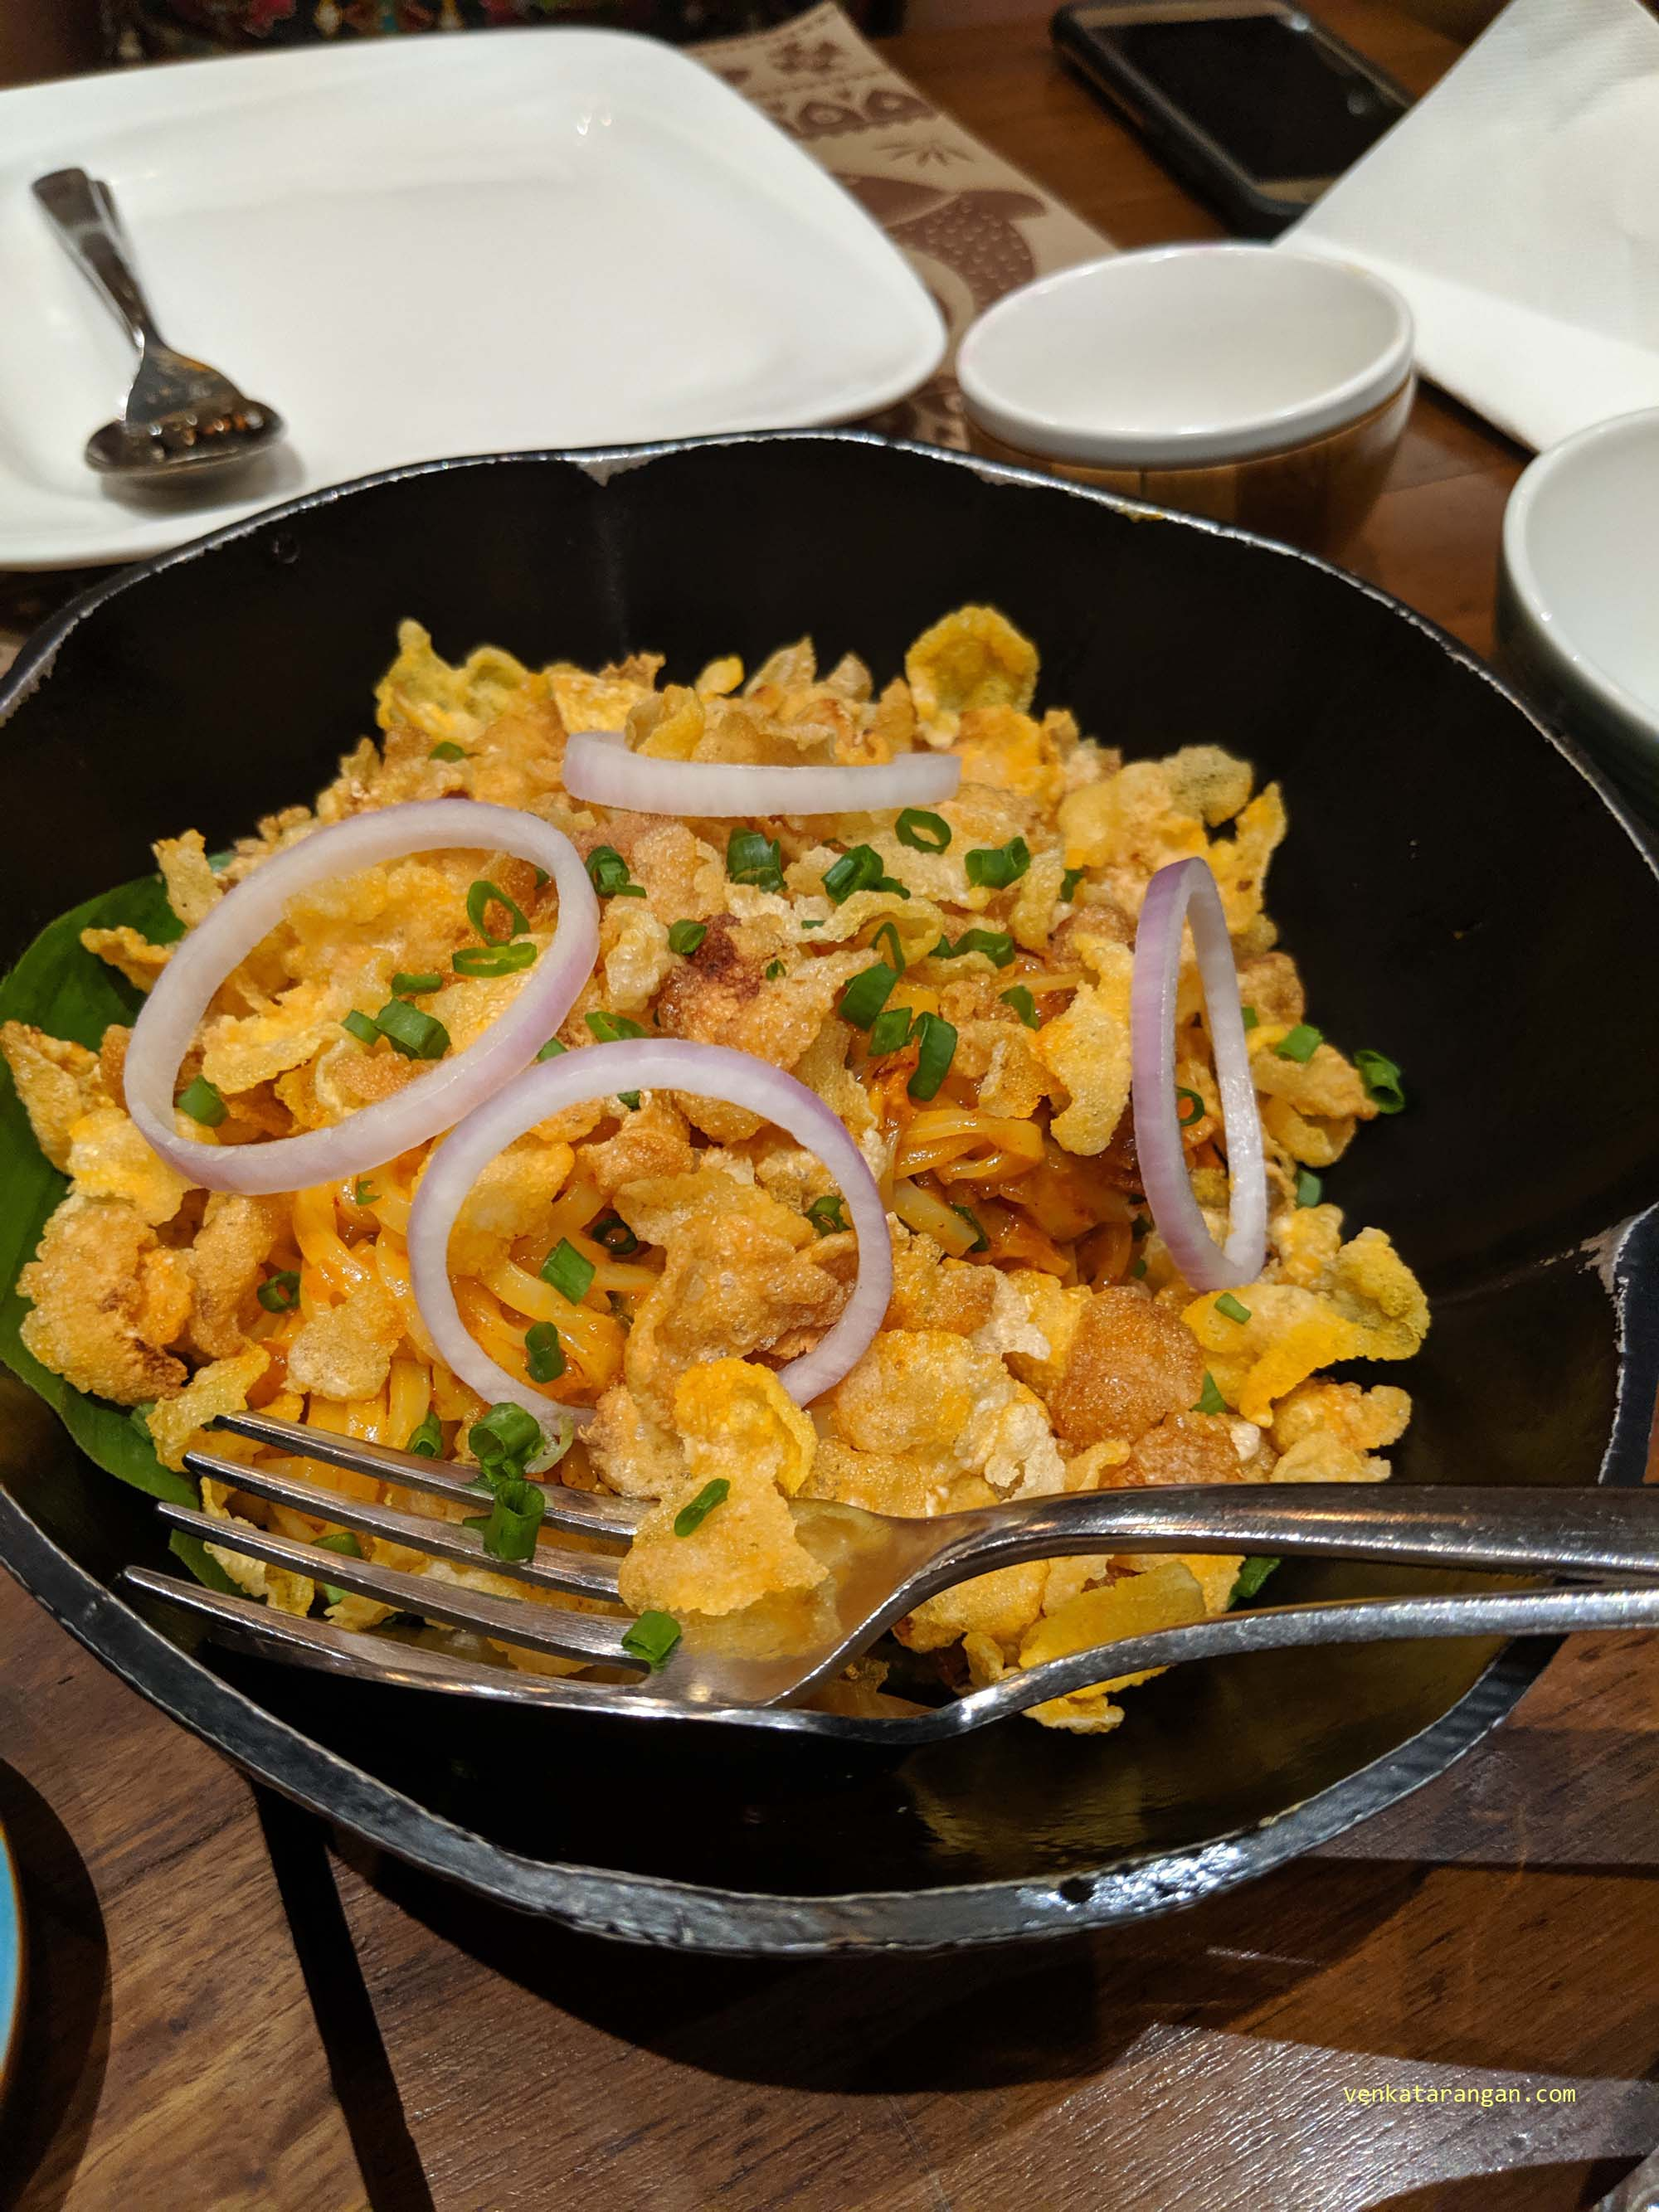 Tasty tape noodles topped with corn flakes and onions